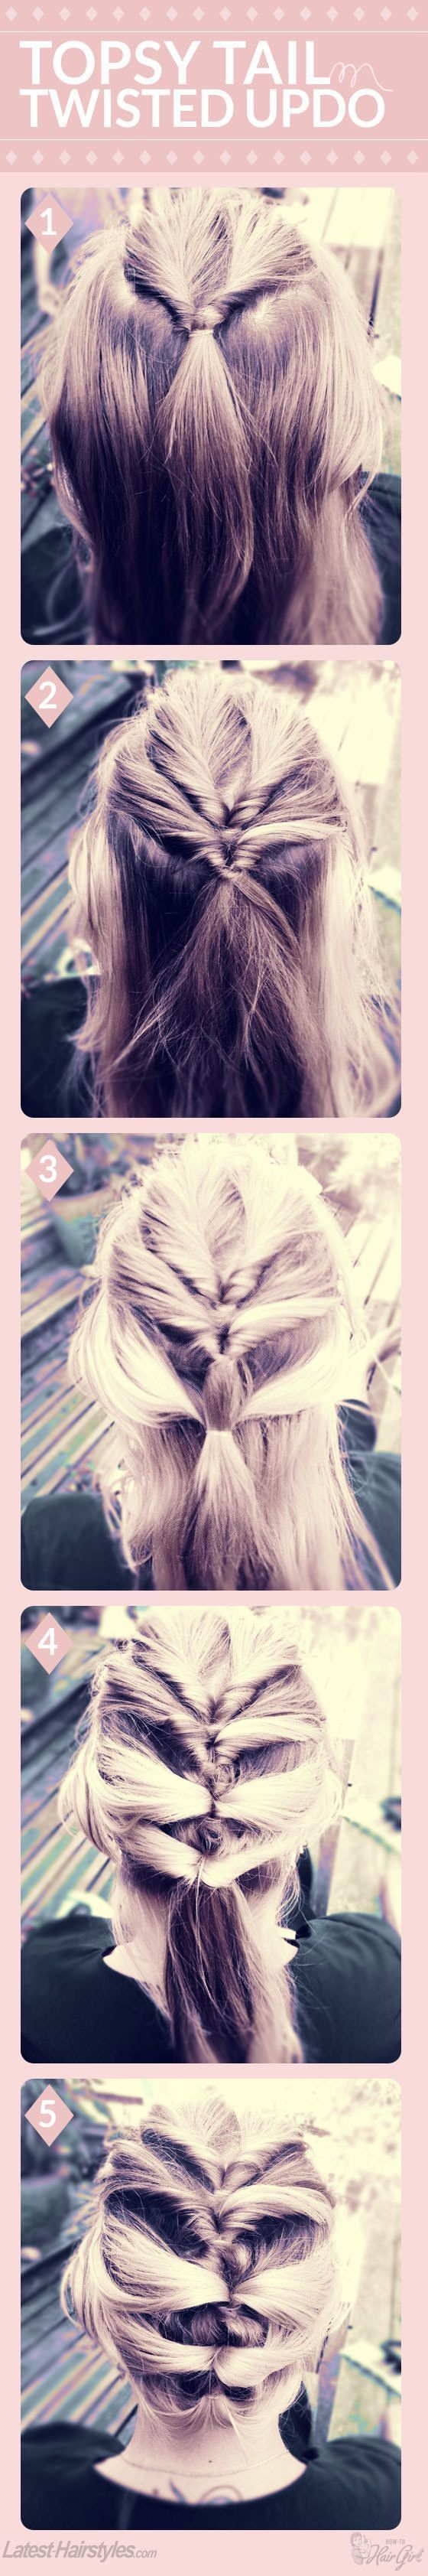 Topsy tail twisted updo – #gestuft #tail #Topsy #t…